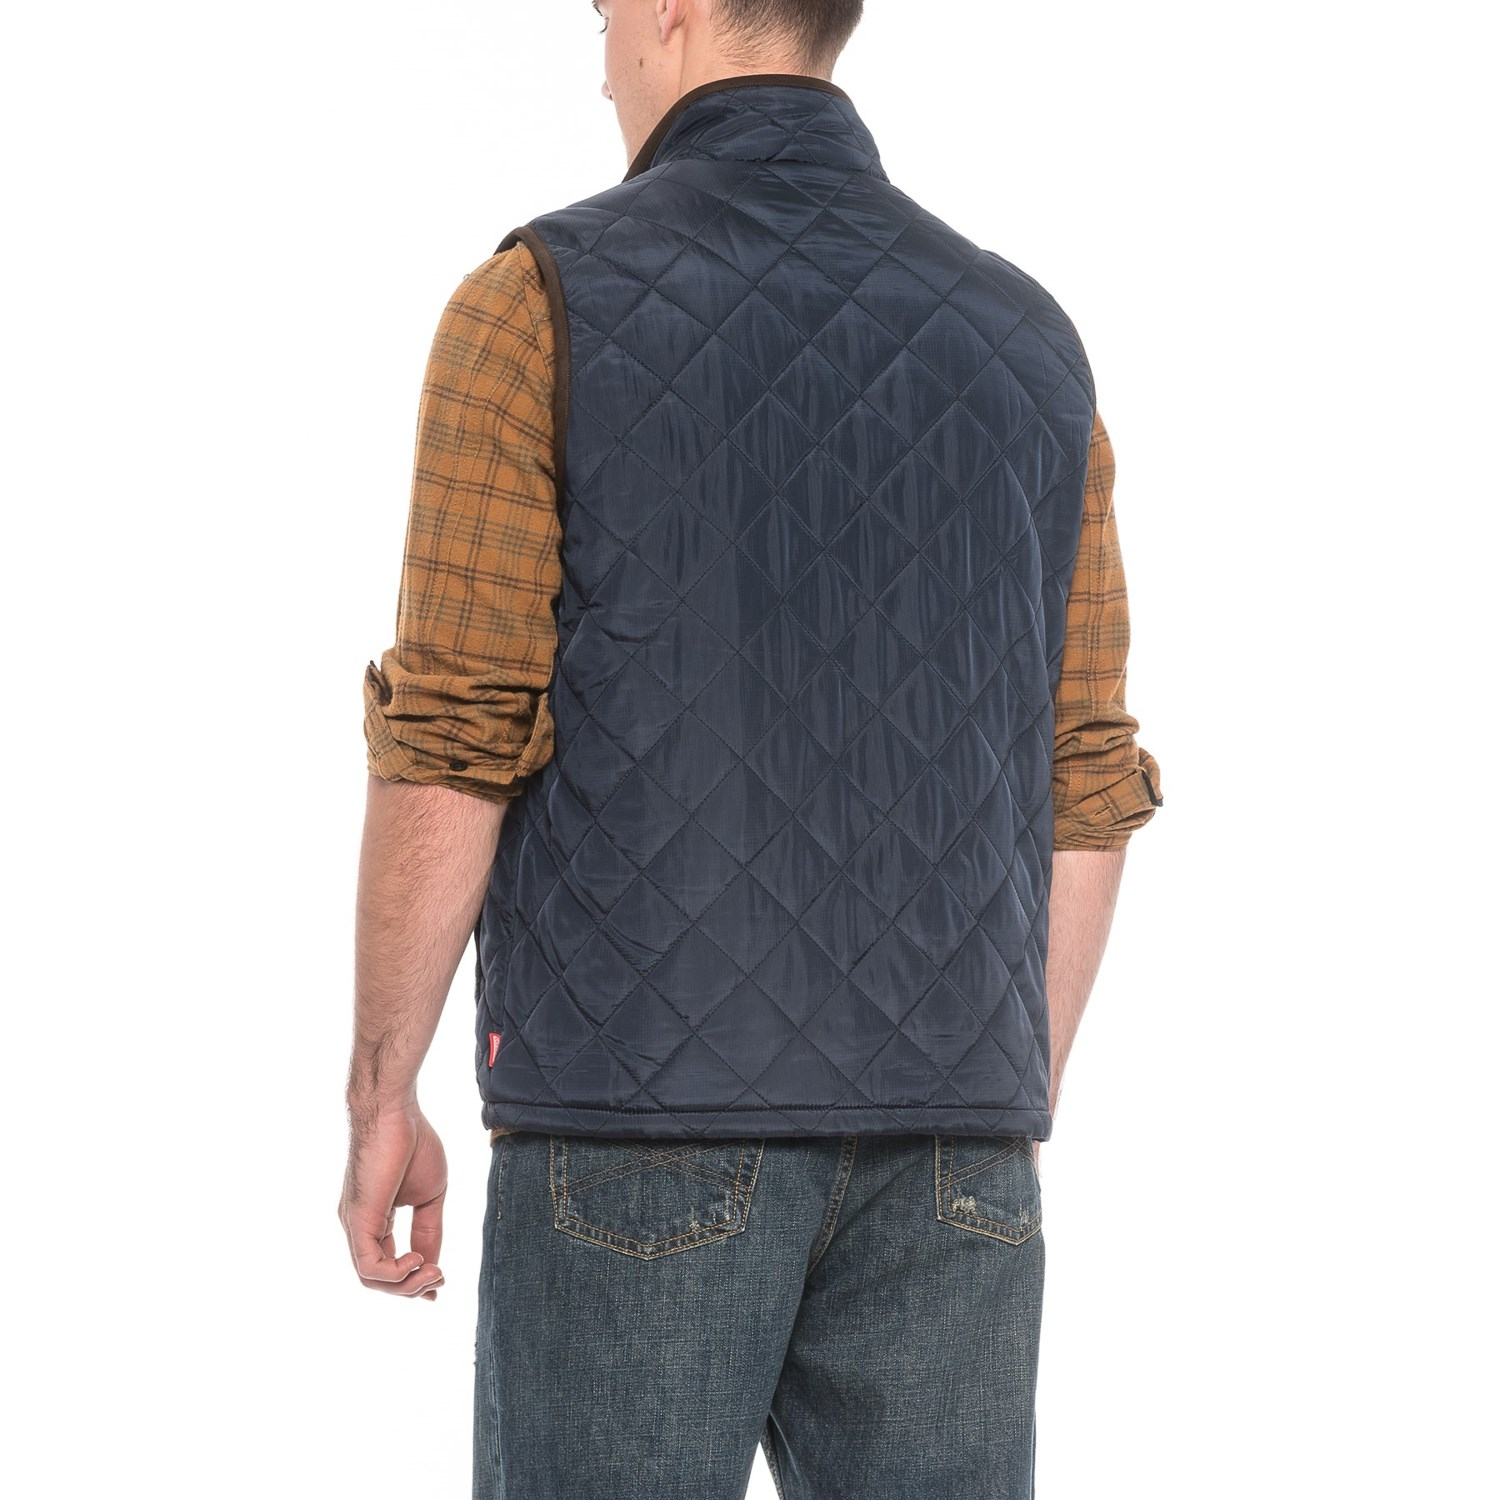 Coleman Quilted Vest (For Men) - Save 70% : quilted vests for men - Adamdwight.com